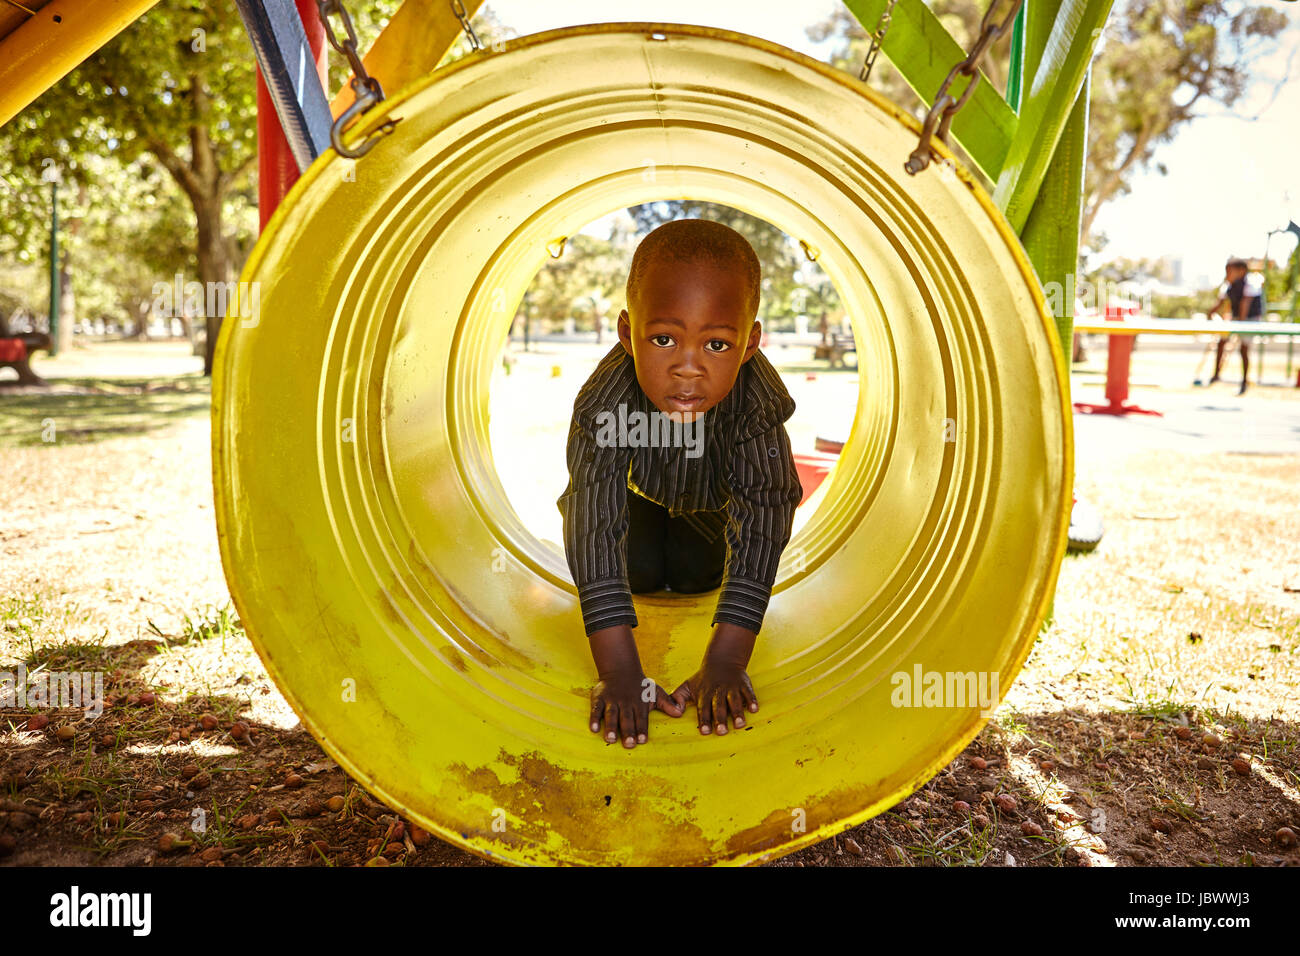 Boy in crawl tunnel in playground - Stock Image